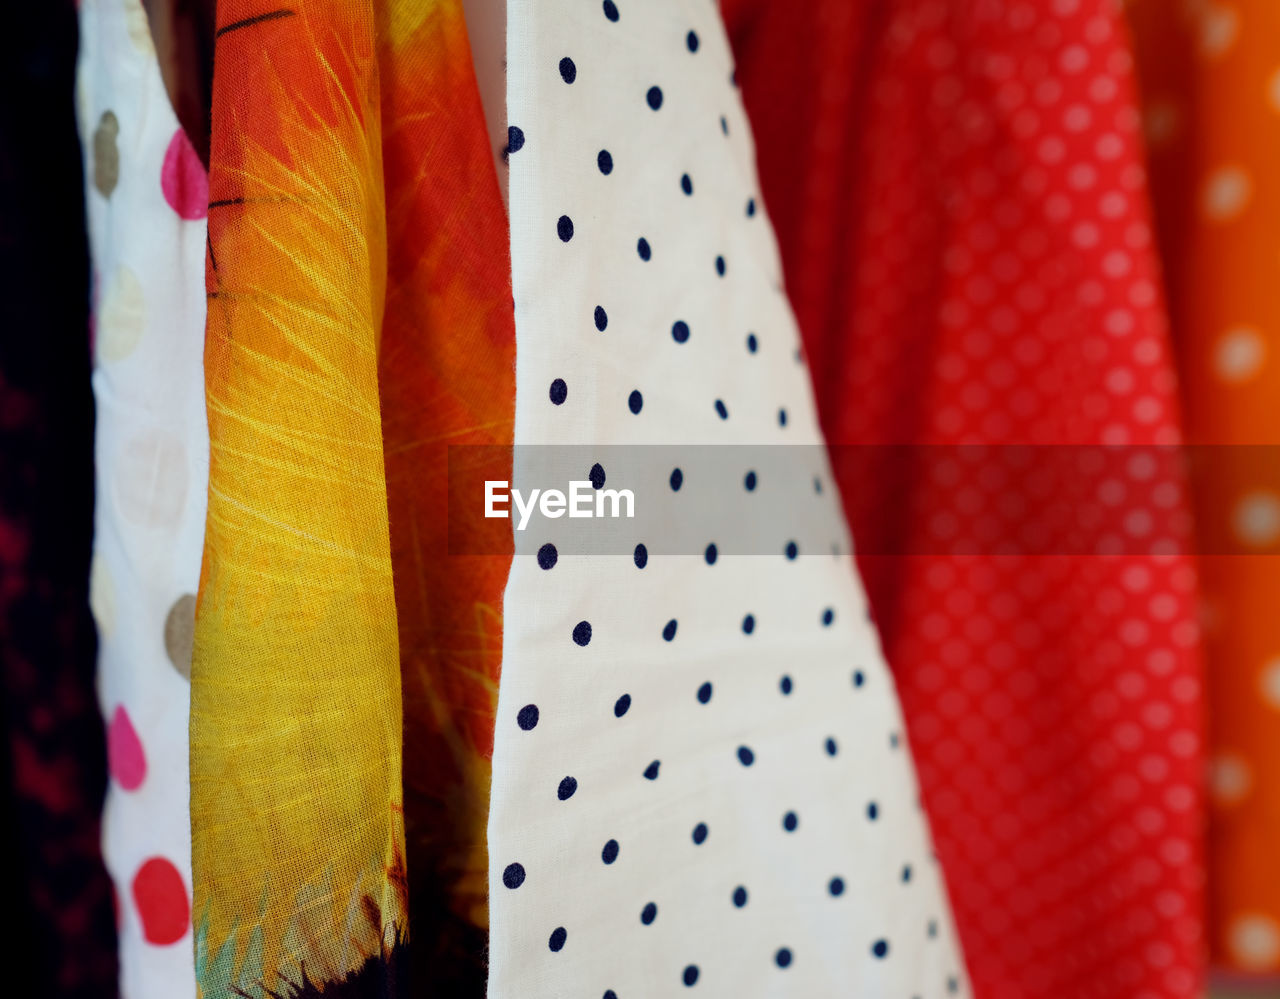 clothing, no people, choice, hanging, pattern, multi colored, indoors, textile, close-up, variation, still life, fashion, polka dot, dress, spotted, white color, in a row, red, day, selective focus, scarf, garment